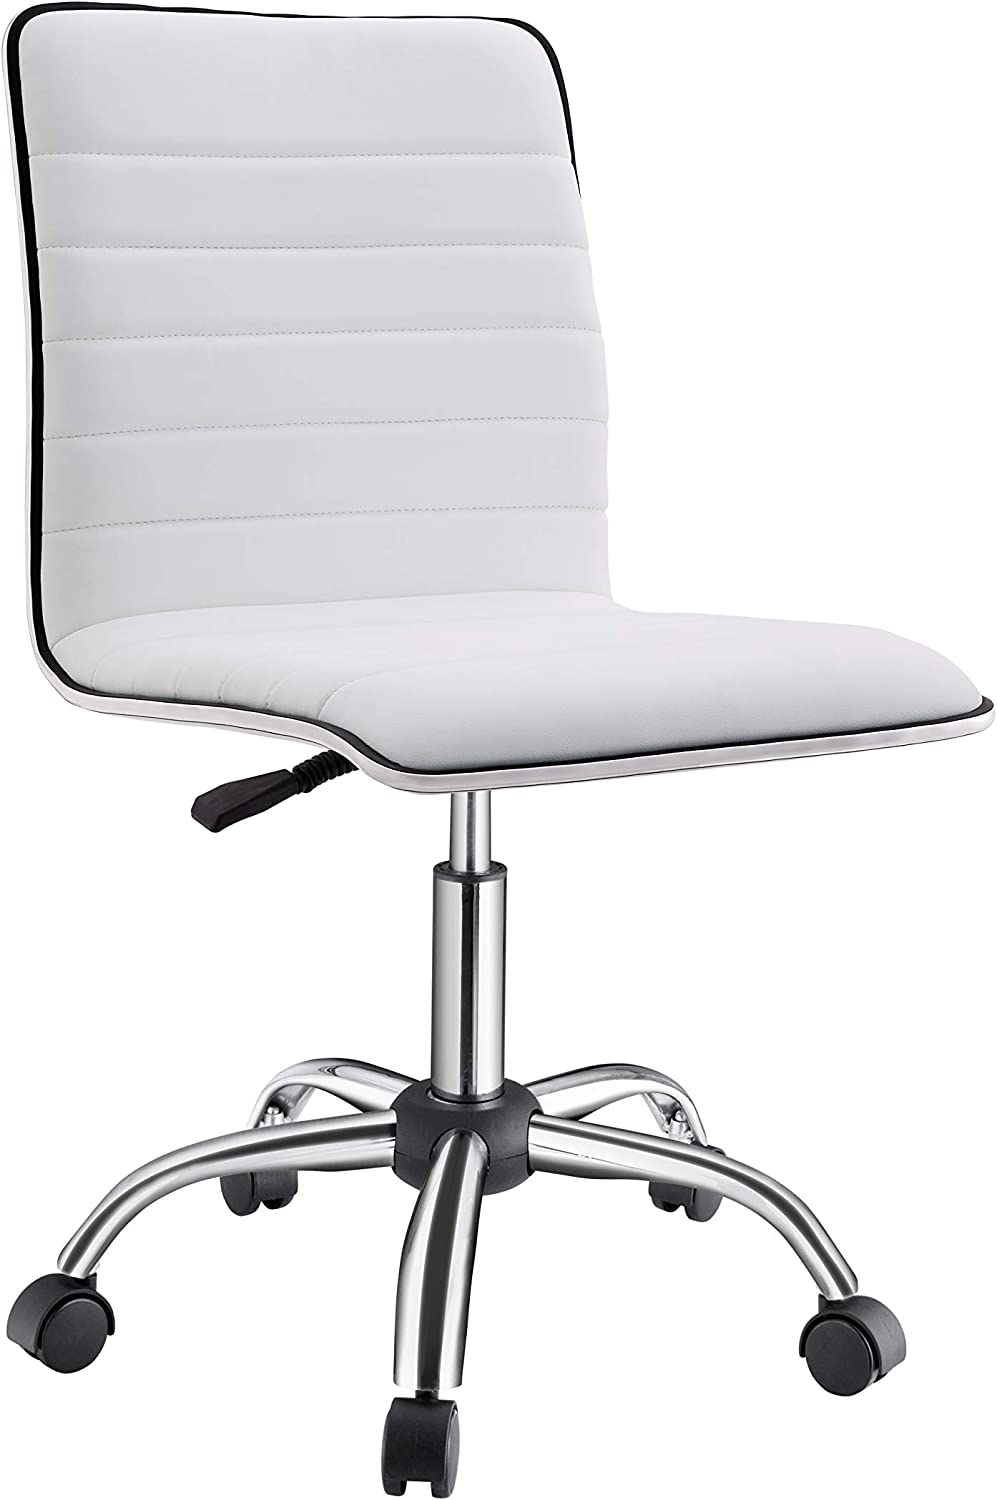 Modern Office Chair, Armless Desk Chair, Office Chair Armless White, Receptionist Task Chair, White Conference Chair